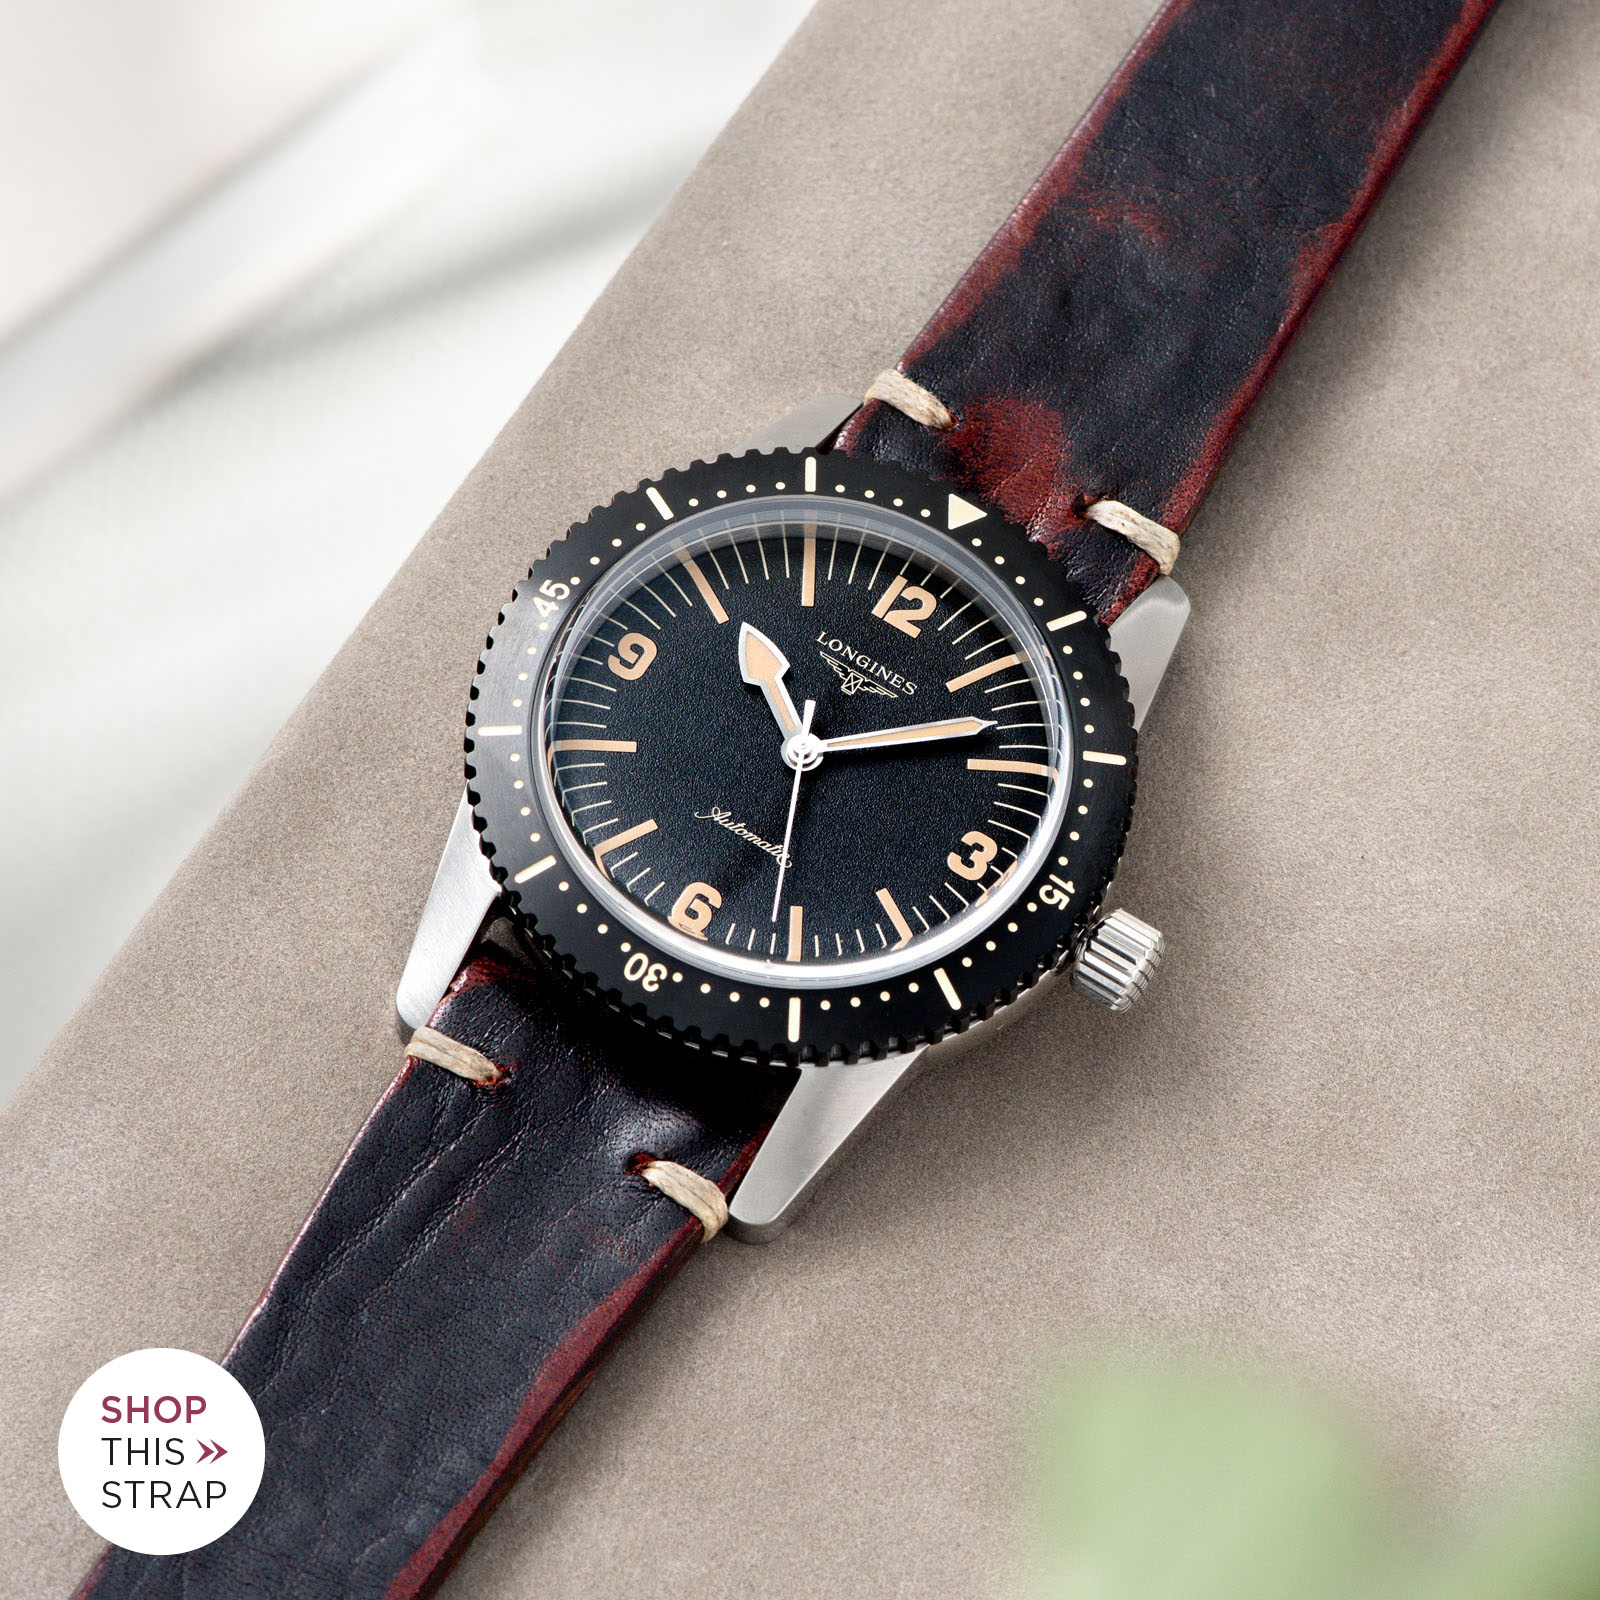 Bulang and Sons_Strap Guide_Longines Skin Diver_Diablo Black Leather Watch Strap